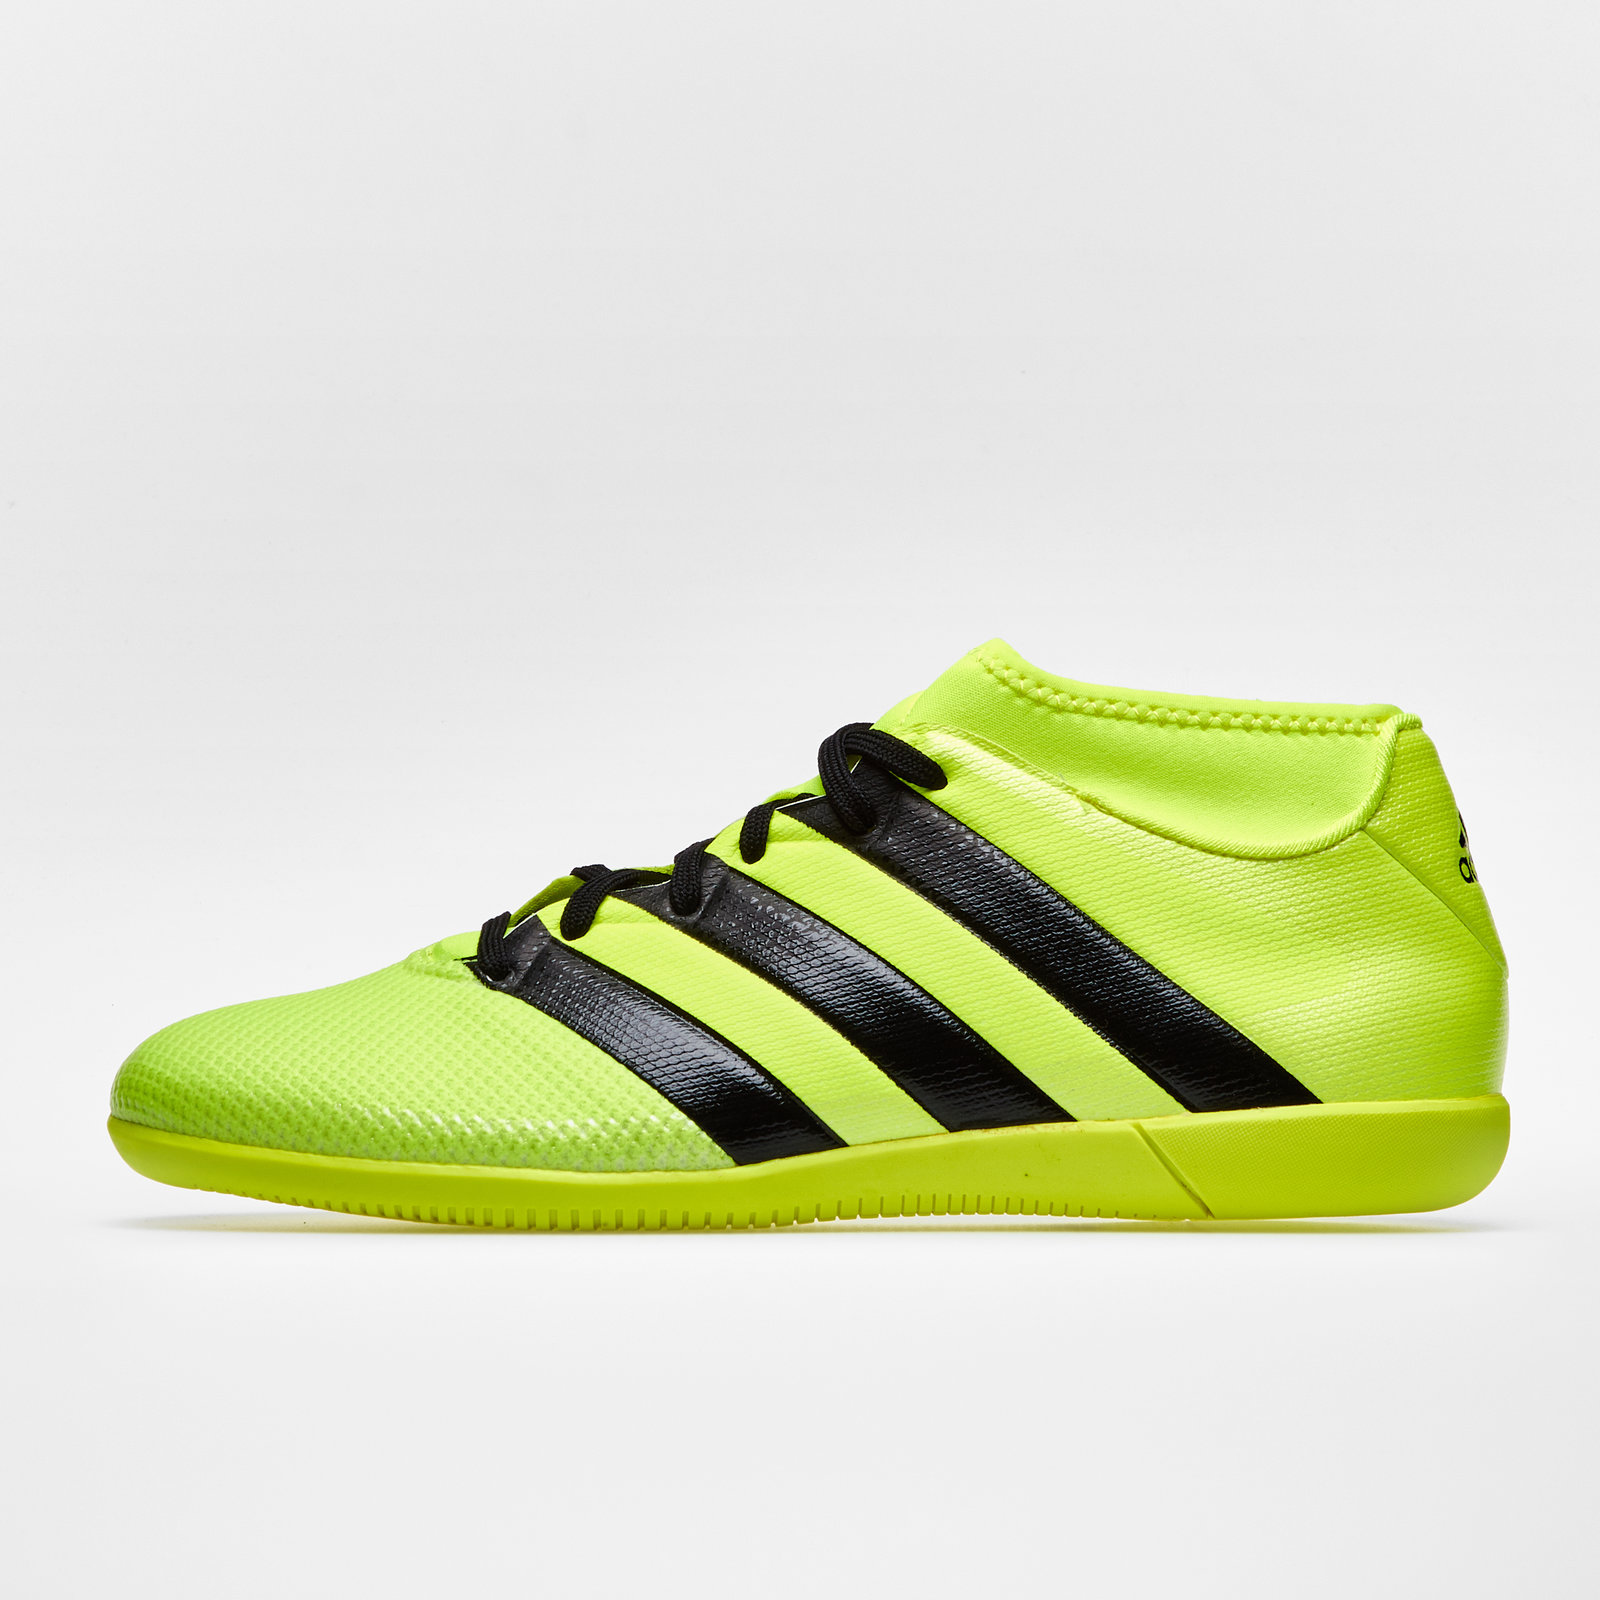 newest 82c97 35178 adidas Mens Ace 16.3 Primemesh Indoor Football Trainers Shoes Training  Sports